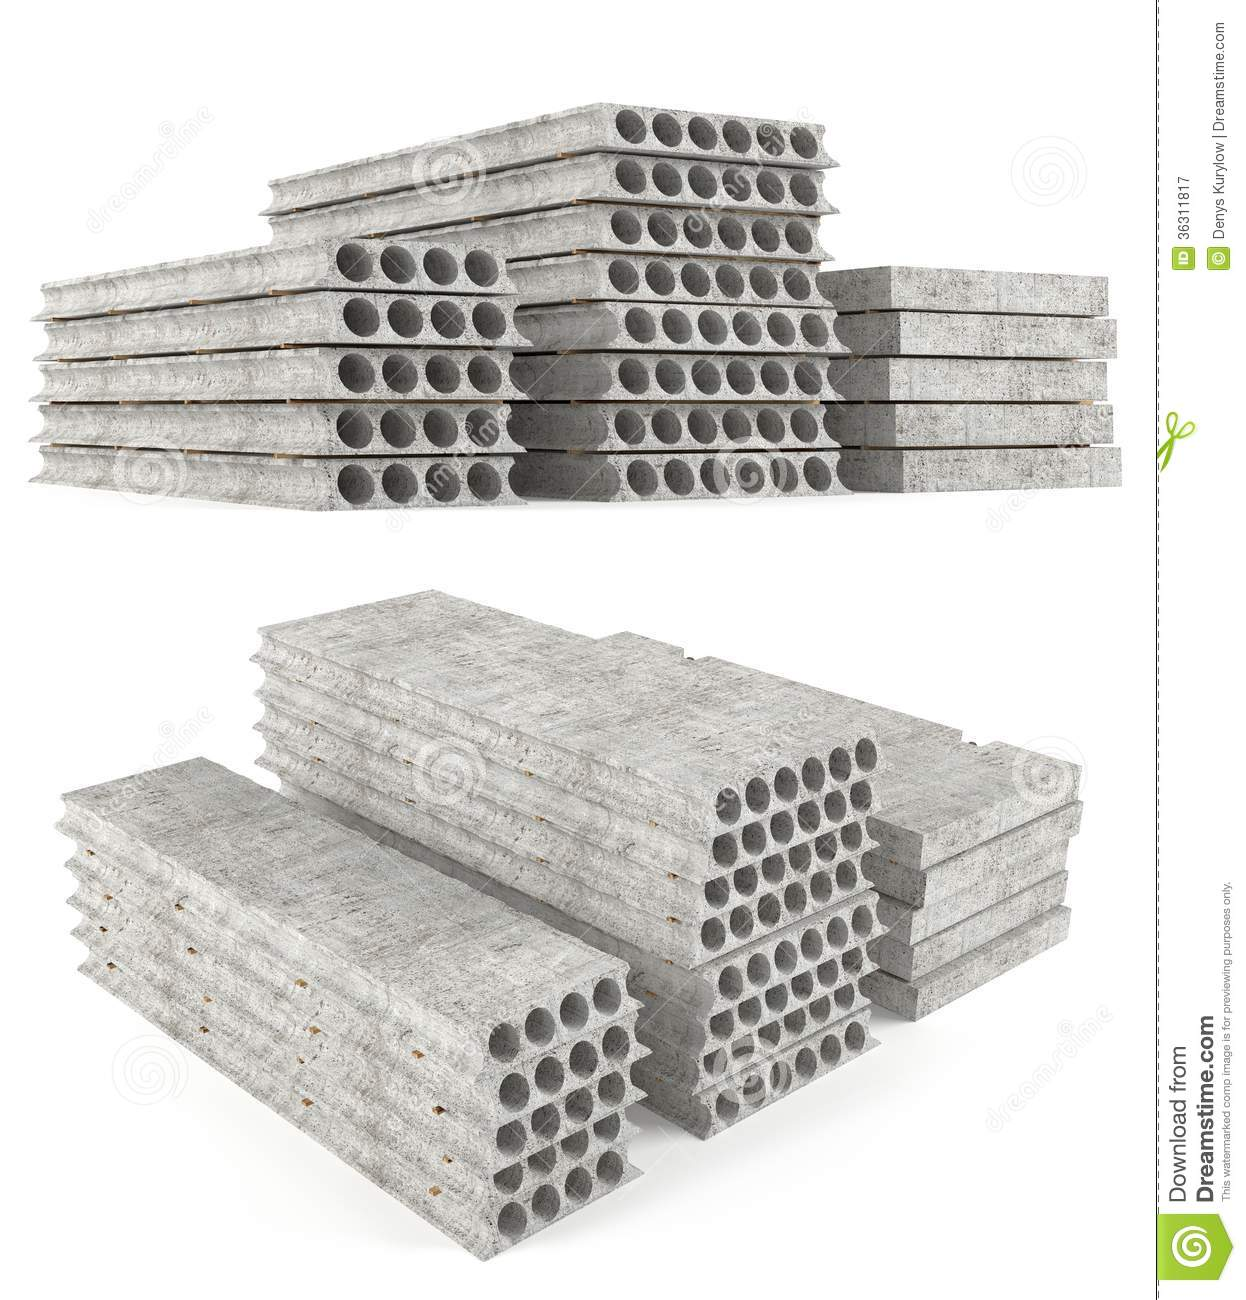 information about cement industry Cement industry: latest news on cement industry |india cements capital information about cement industry in india ltd (iccl) provides various financial services.